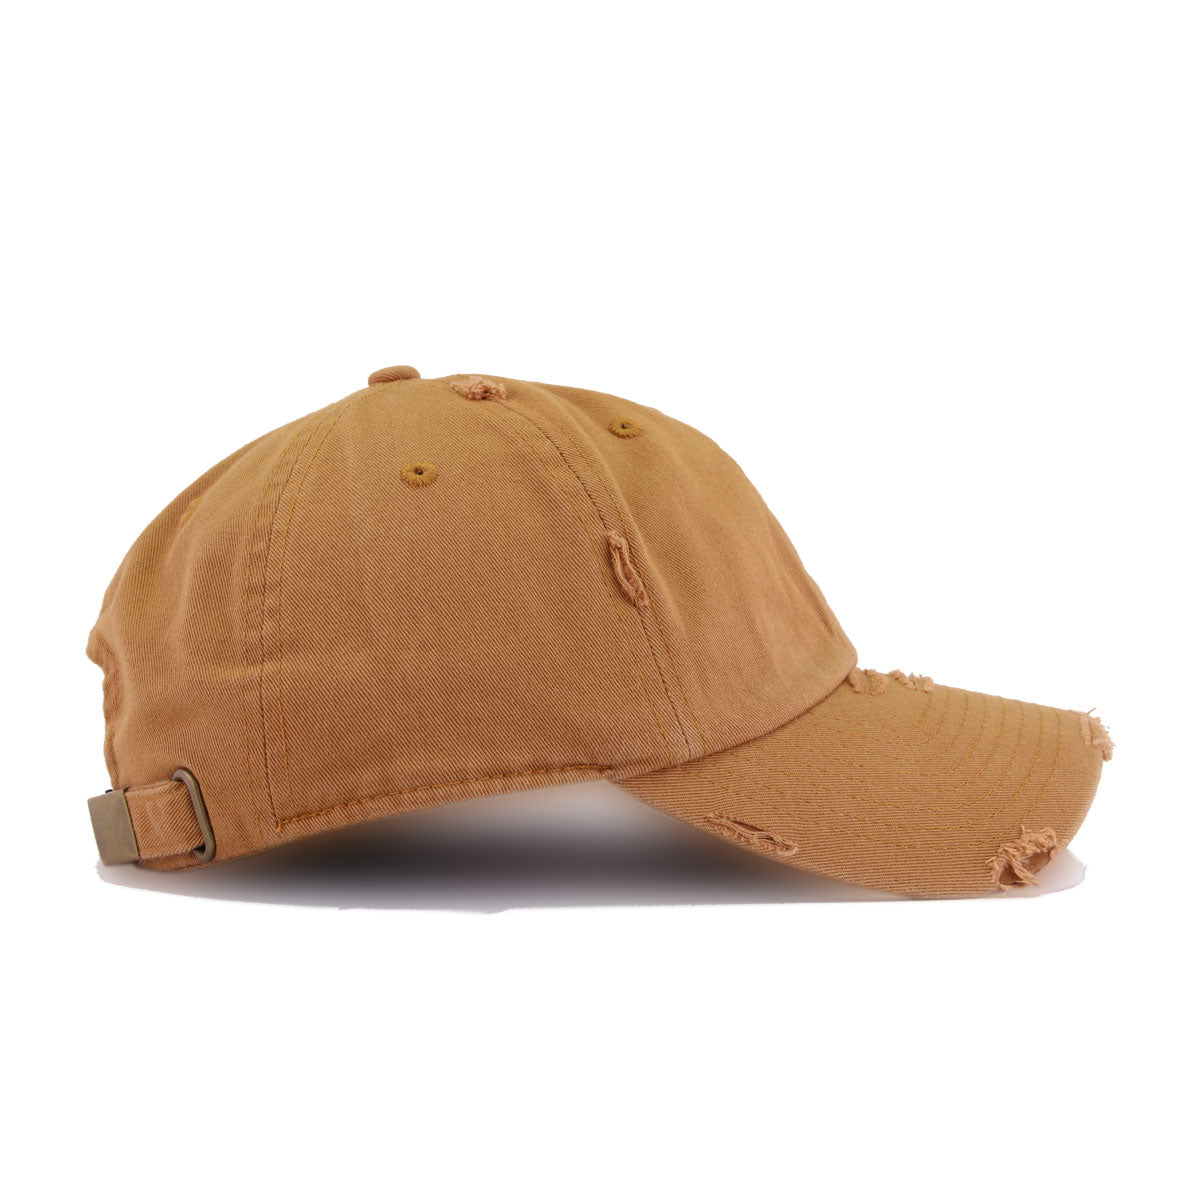 Distressed Tan KBEthos Vintage Dad Hat